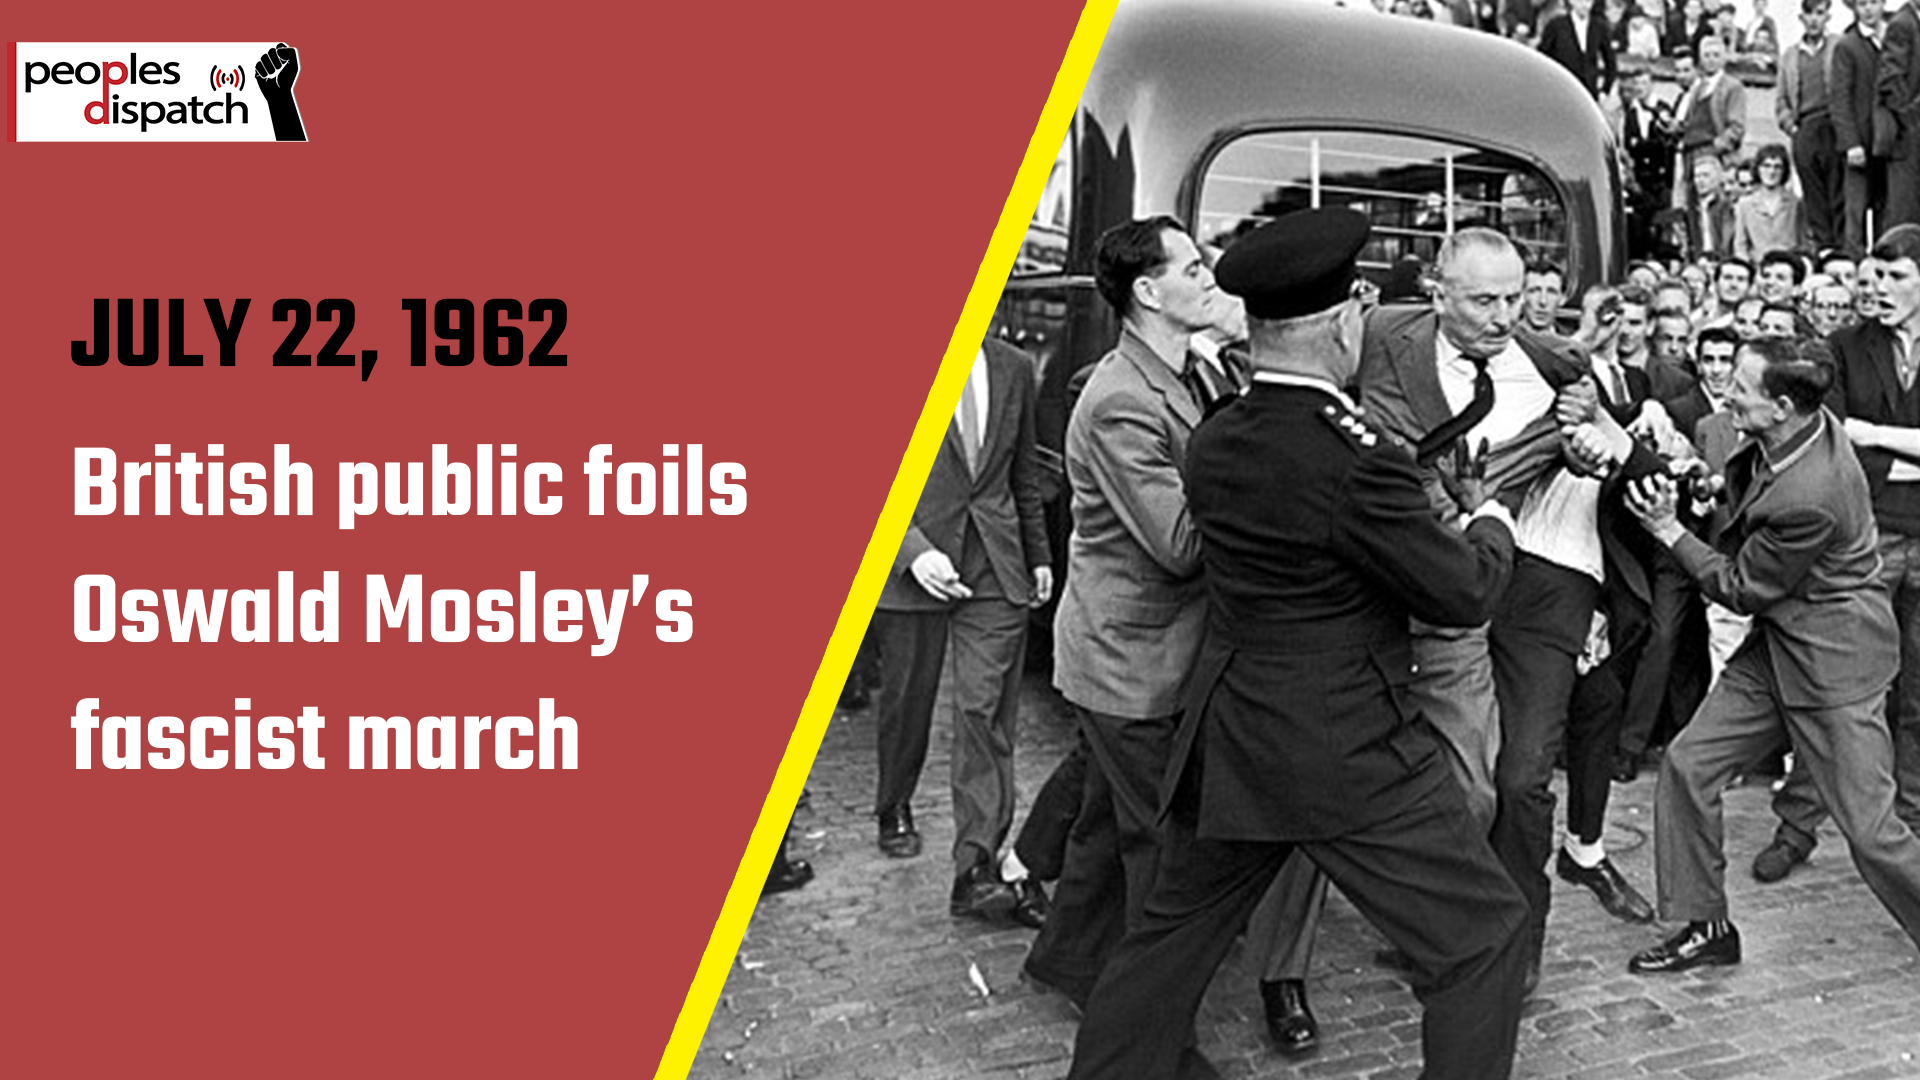 British public foils Oswald Mosley's fascist march